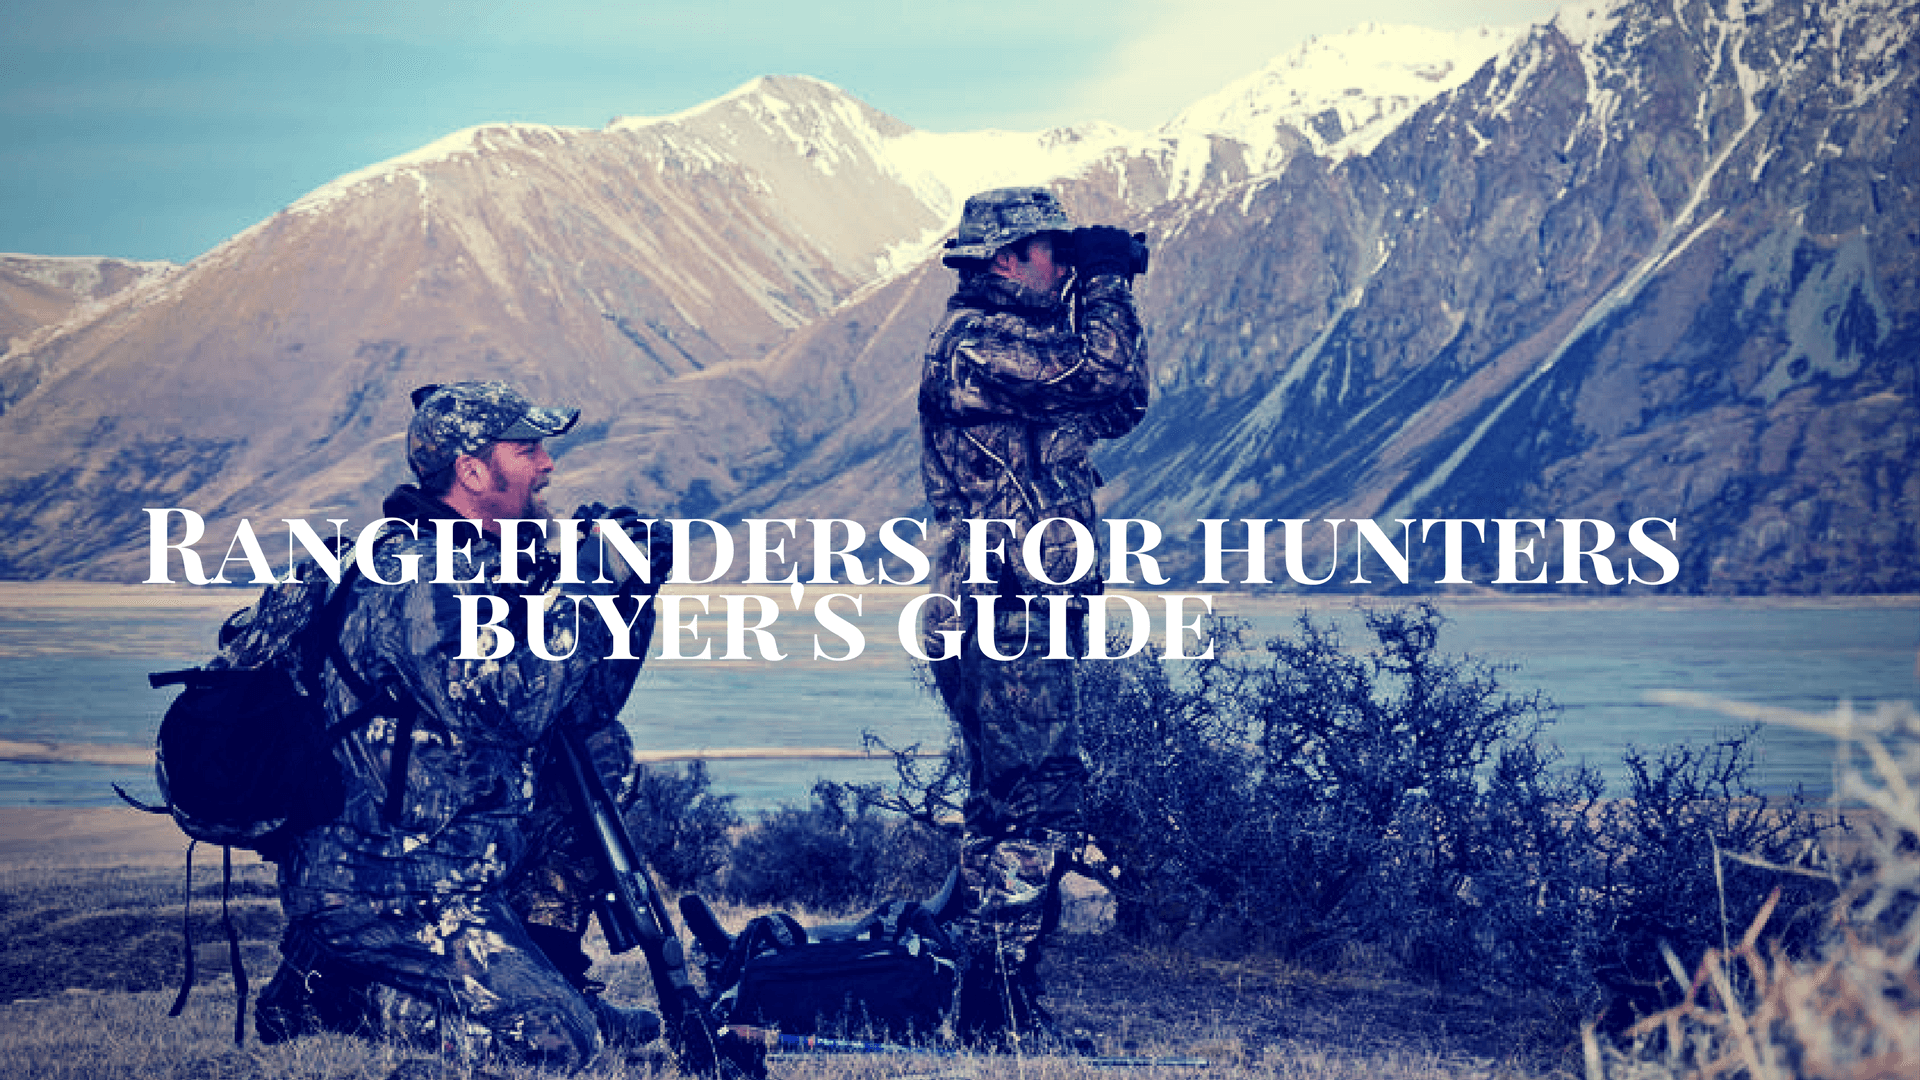 laser Rangefinders for hunting